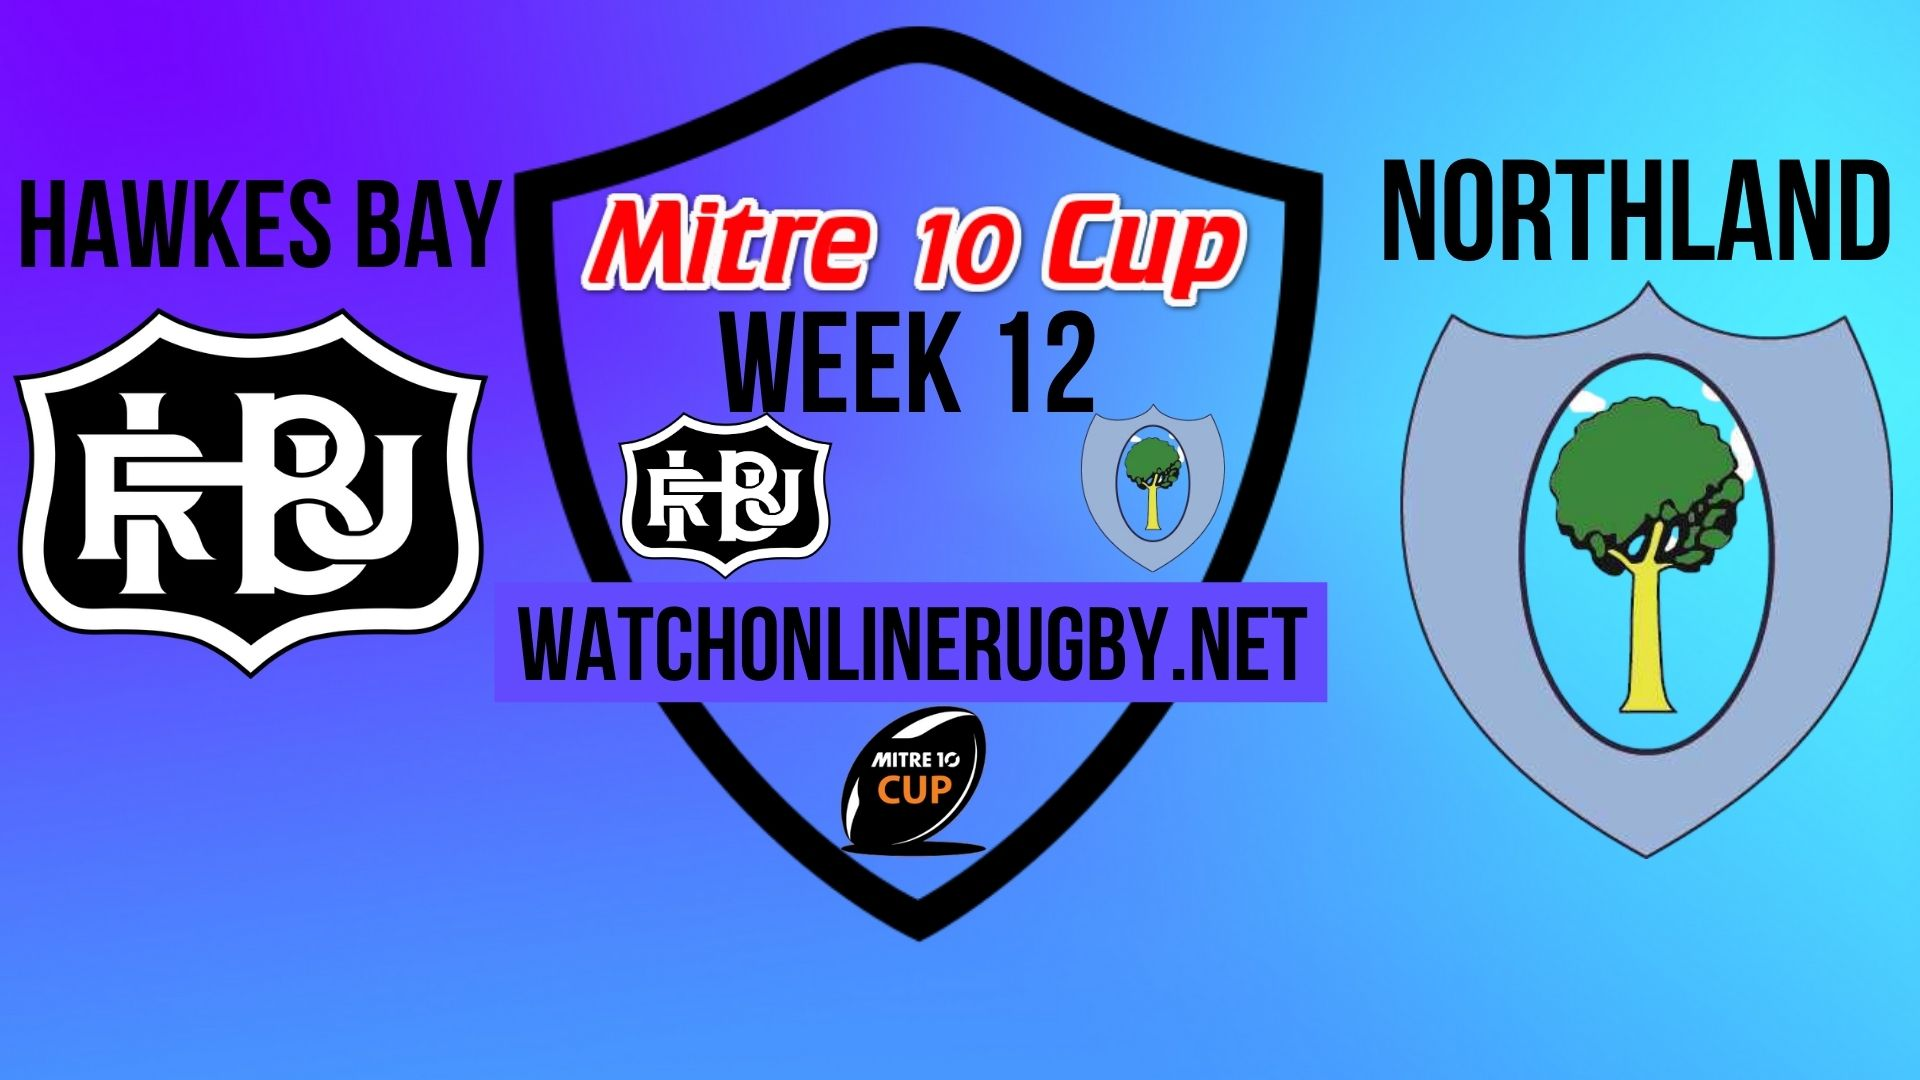 Hawkes Bay vs Northland Mitre 10 Cup 2020 Week 12